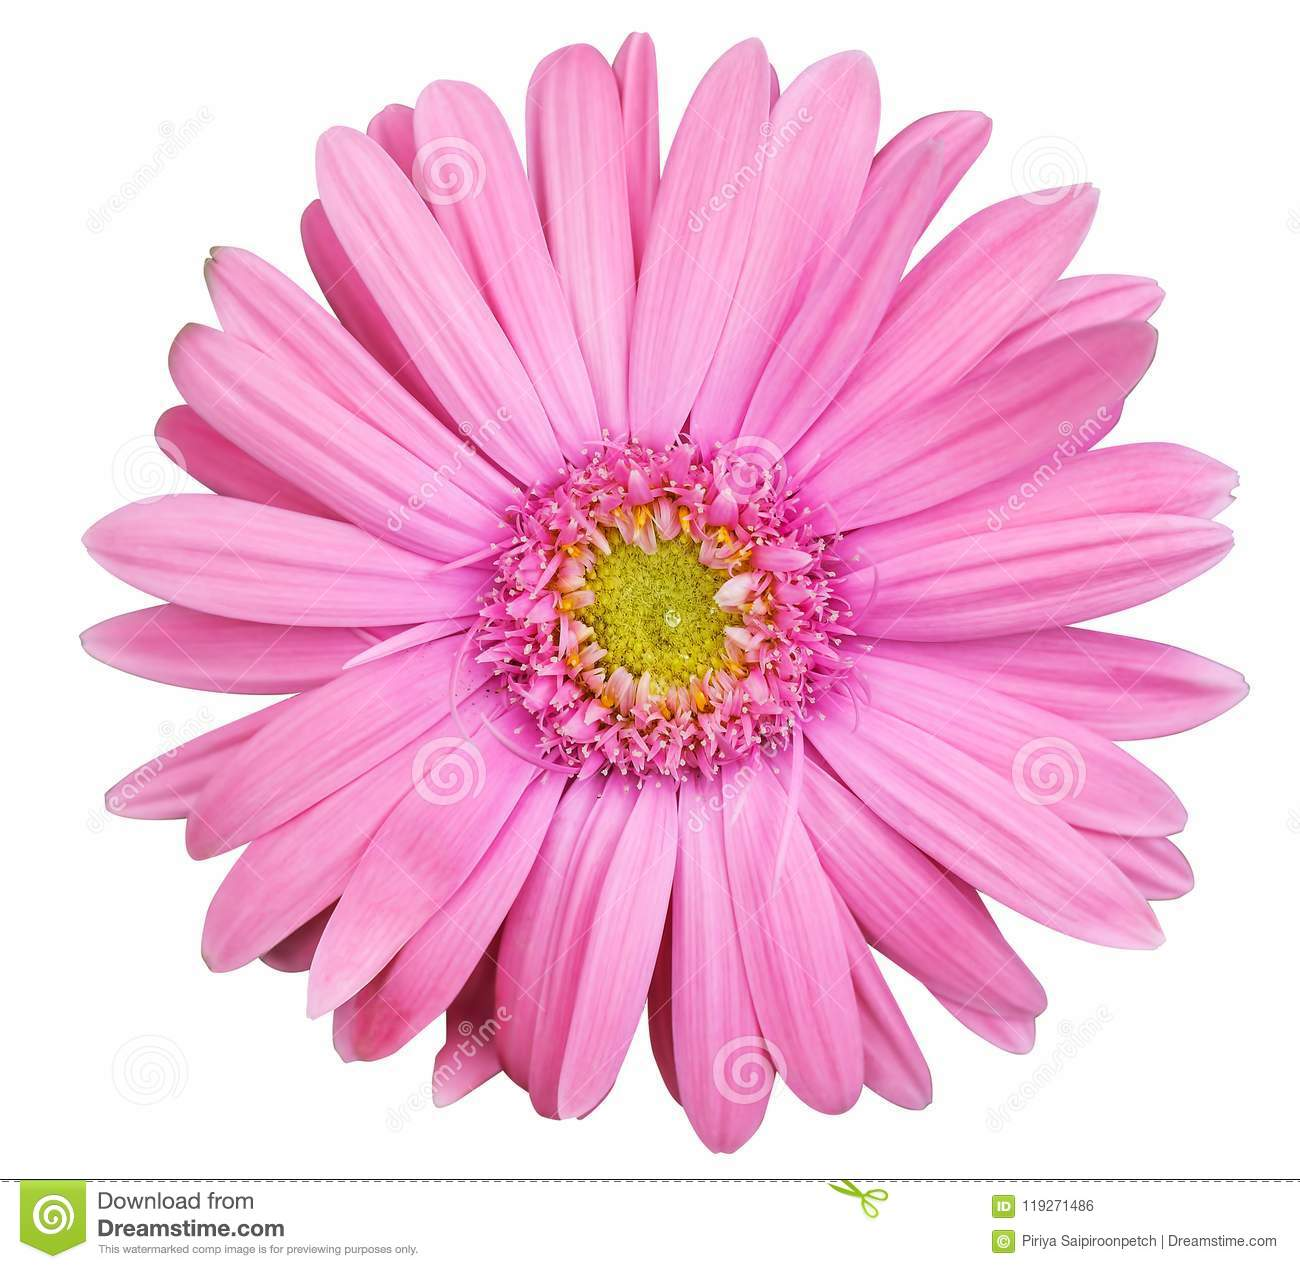 Pink Gerbera Daisy Flower Isolated On White Background Stock Photo